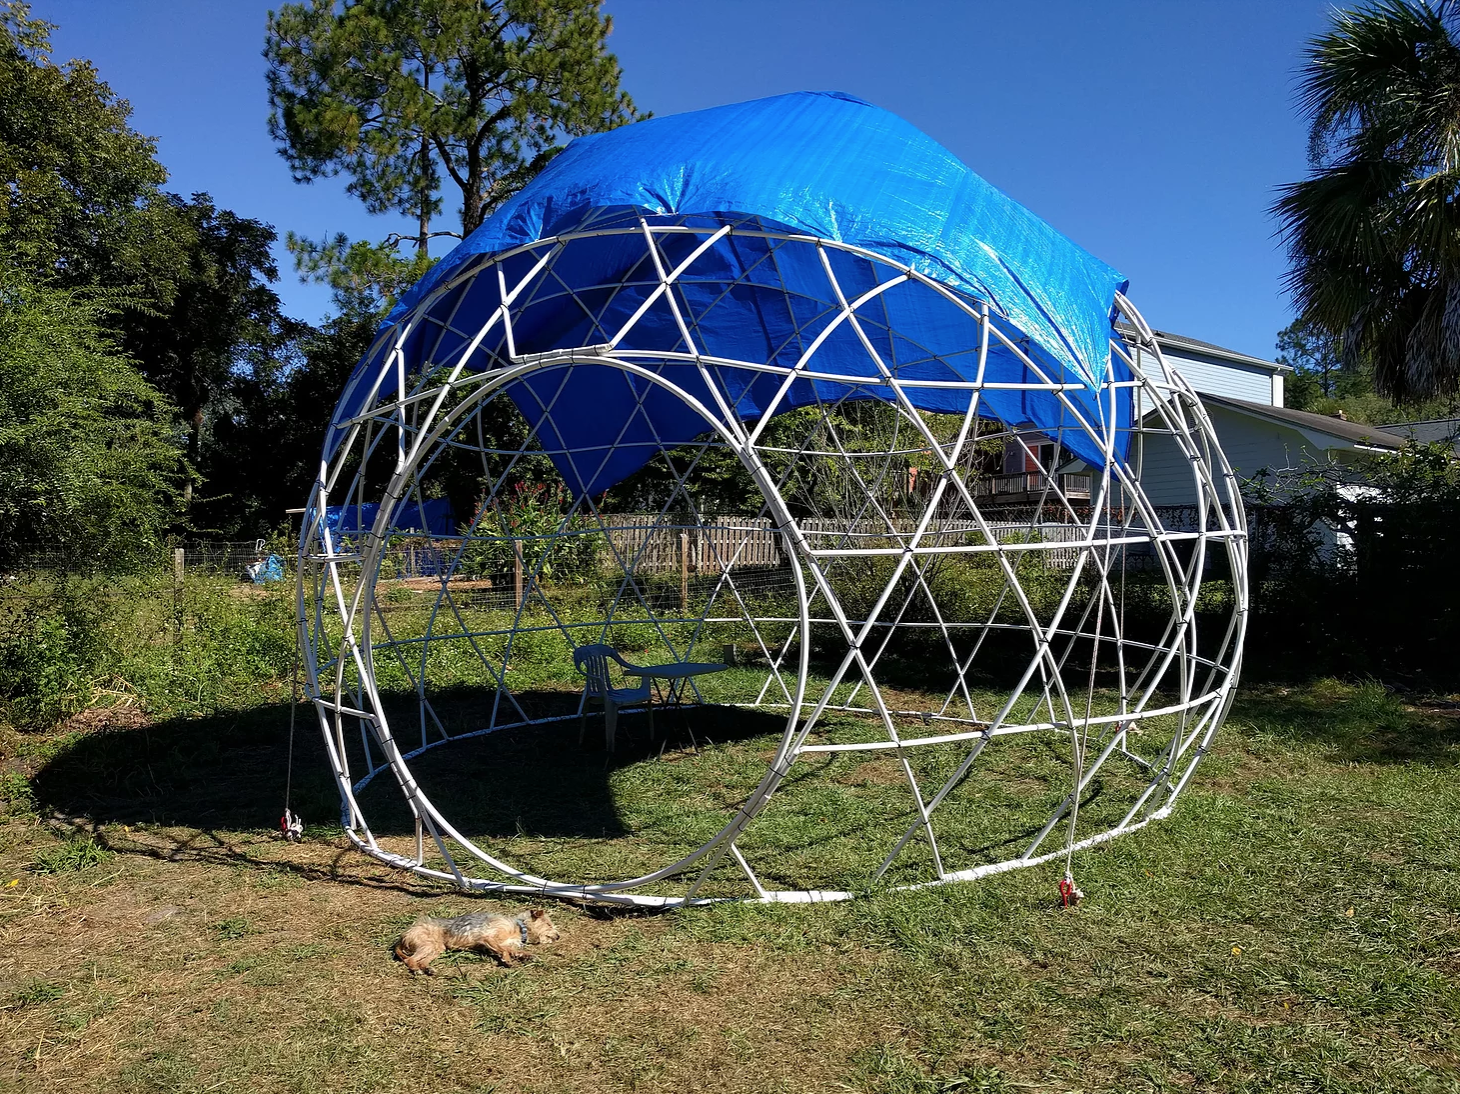 Customizable Circular Woven Dome Building